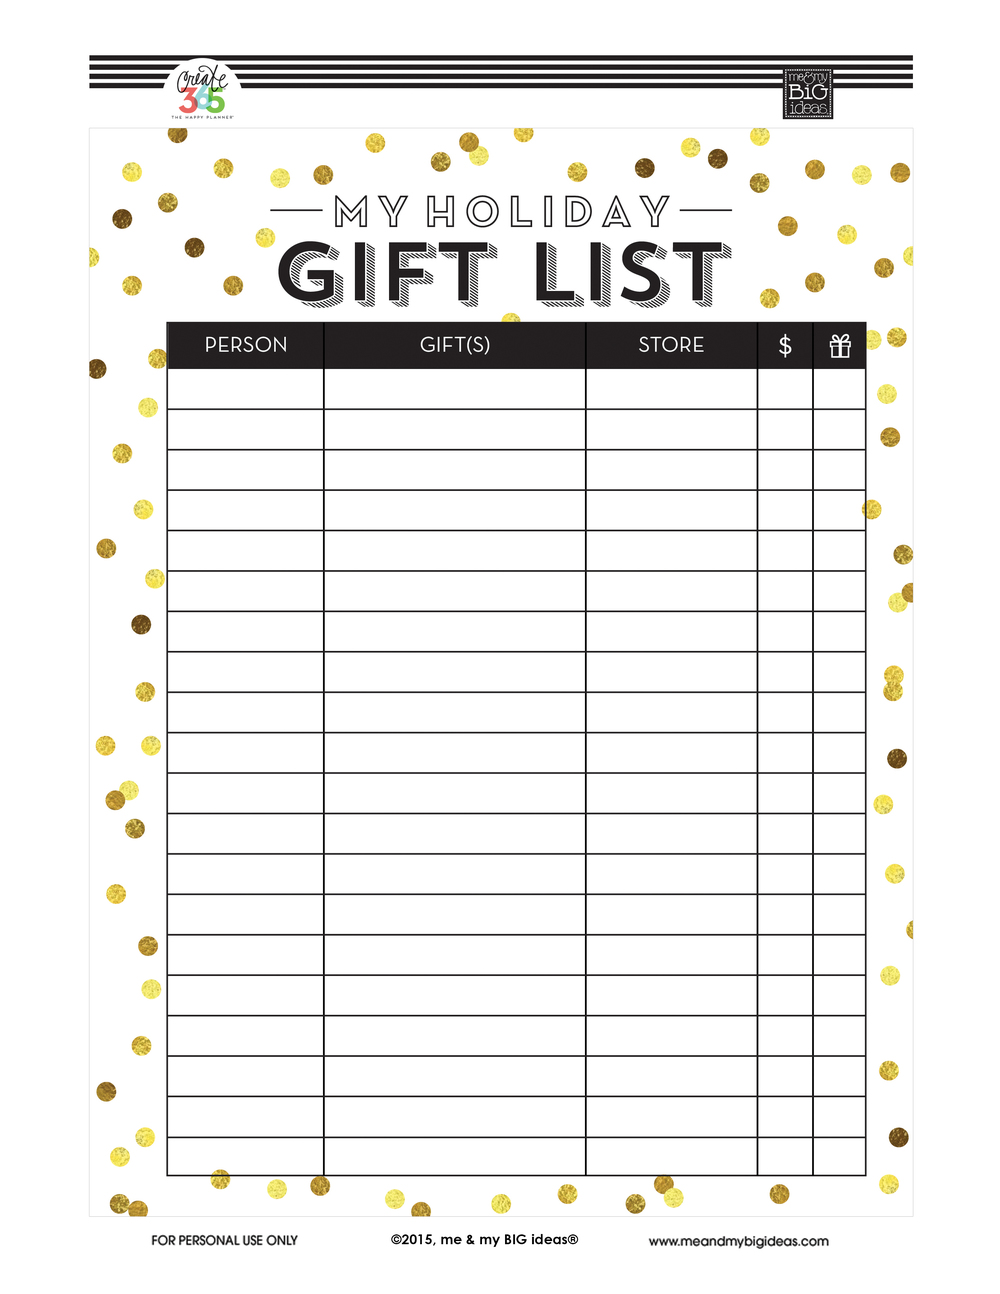 00 RGB CONFETTI Mambi HolidayGiftList Image For Website  Free Printable Christmas Lists